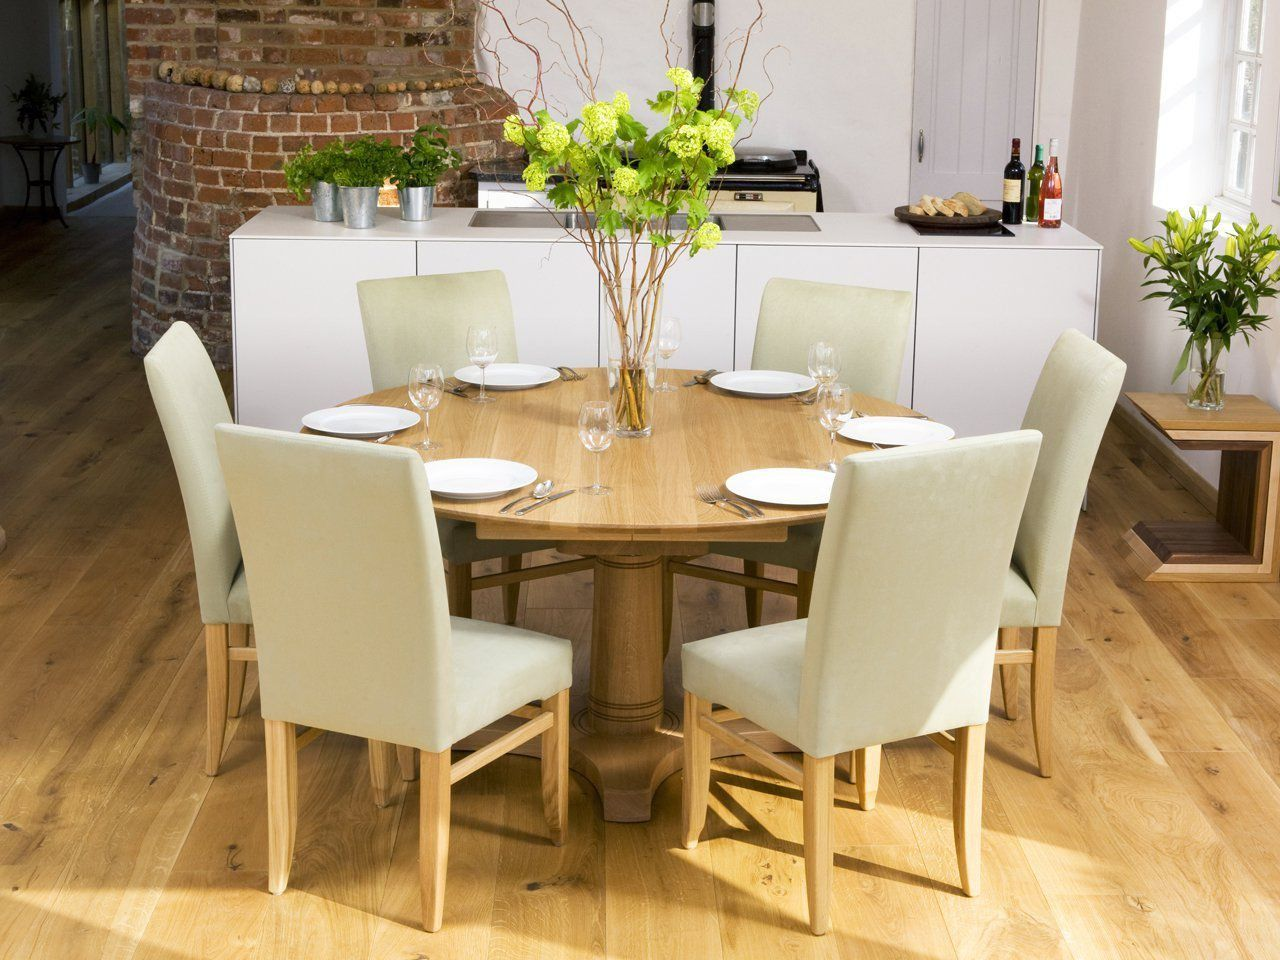 Oak Dining Chairs  Oak Dining Chairs Dining Chairs And Room Decor Mesmerizing Dining Room Suit Inspiration Design